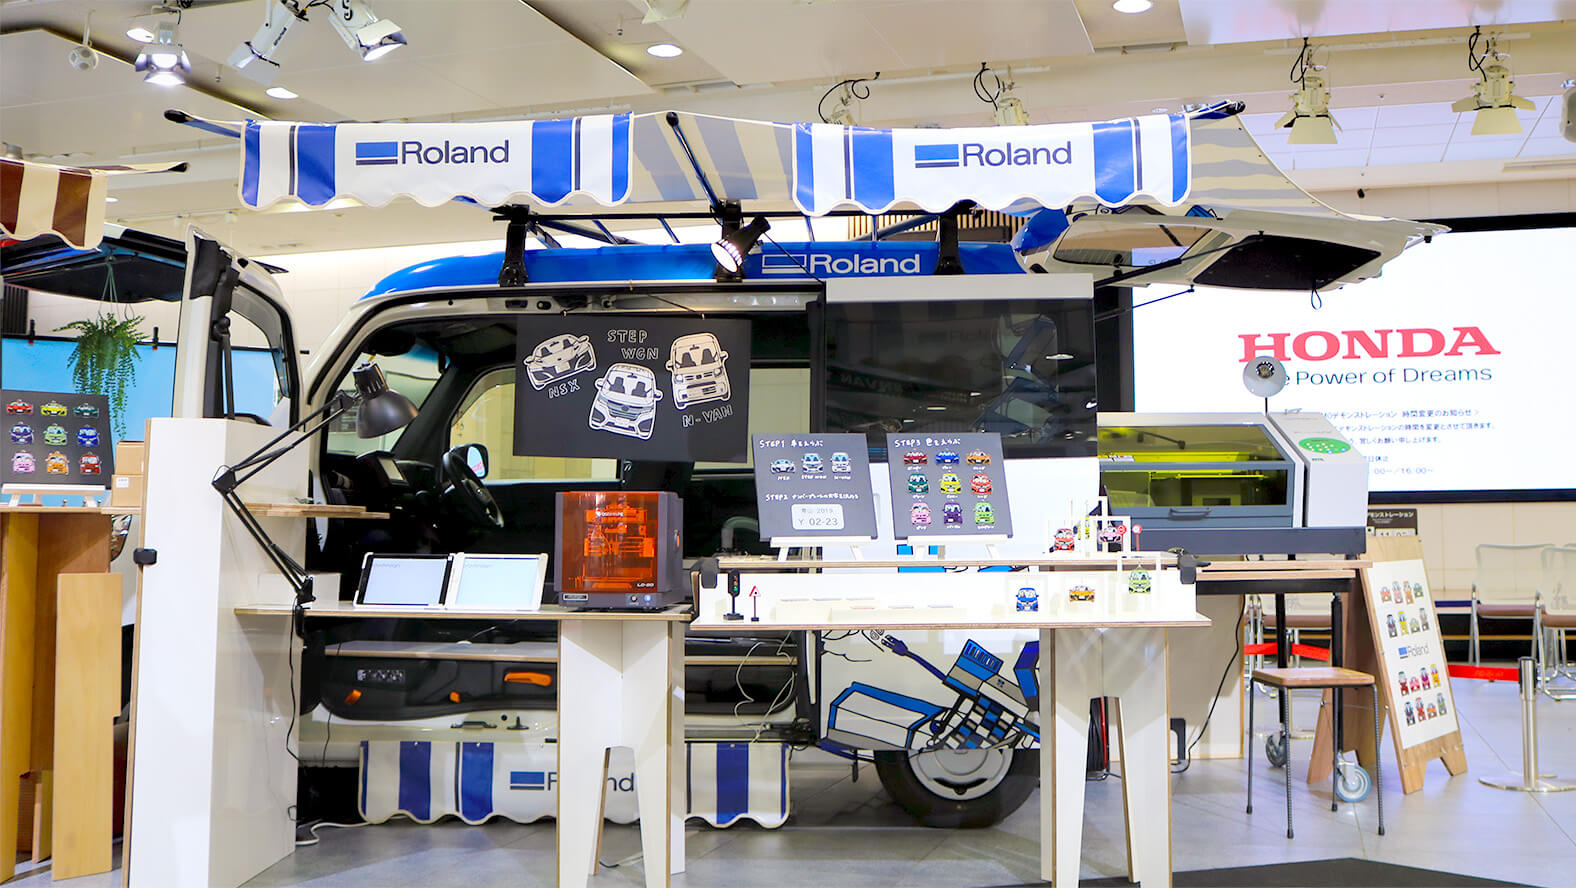 A customized Honda N-VAN minivan which gave visitors an opportunity to express their own sense of style using Roland DG's digital tools.